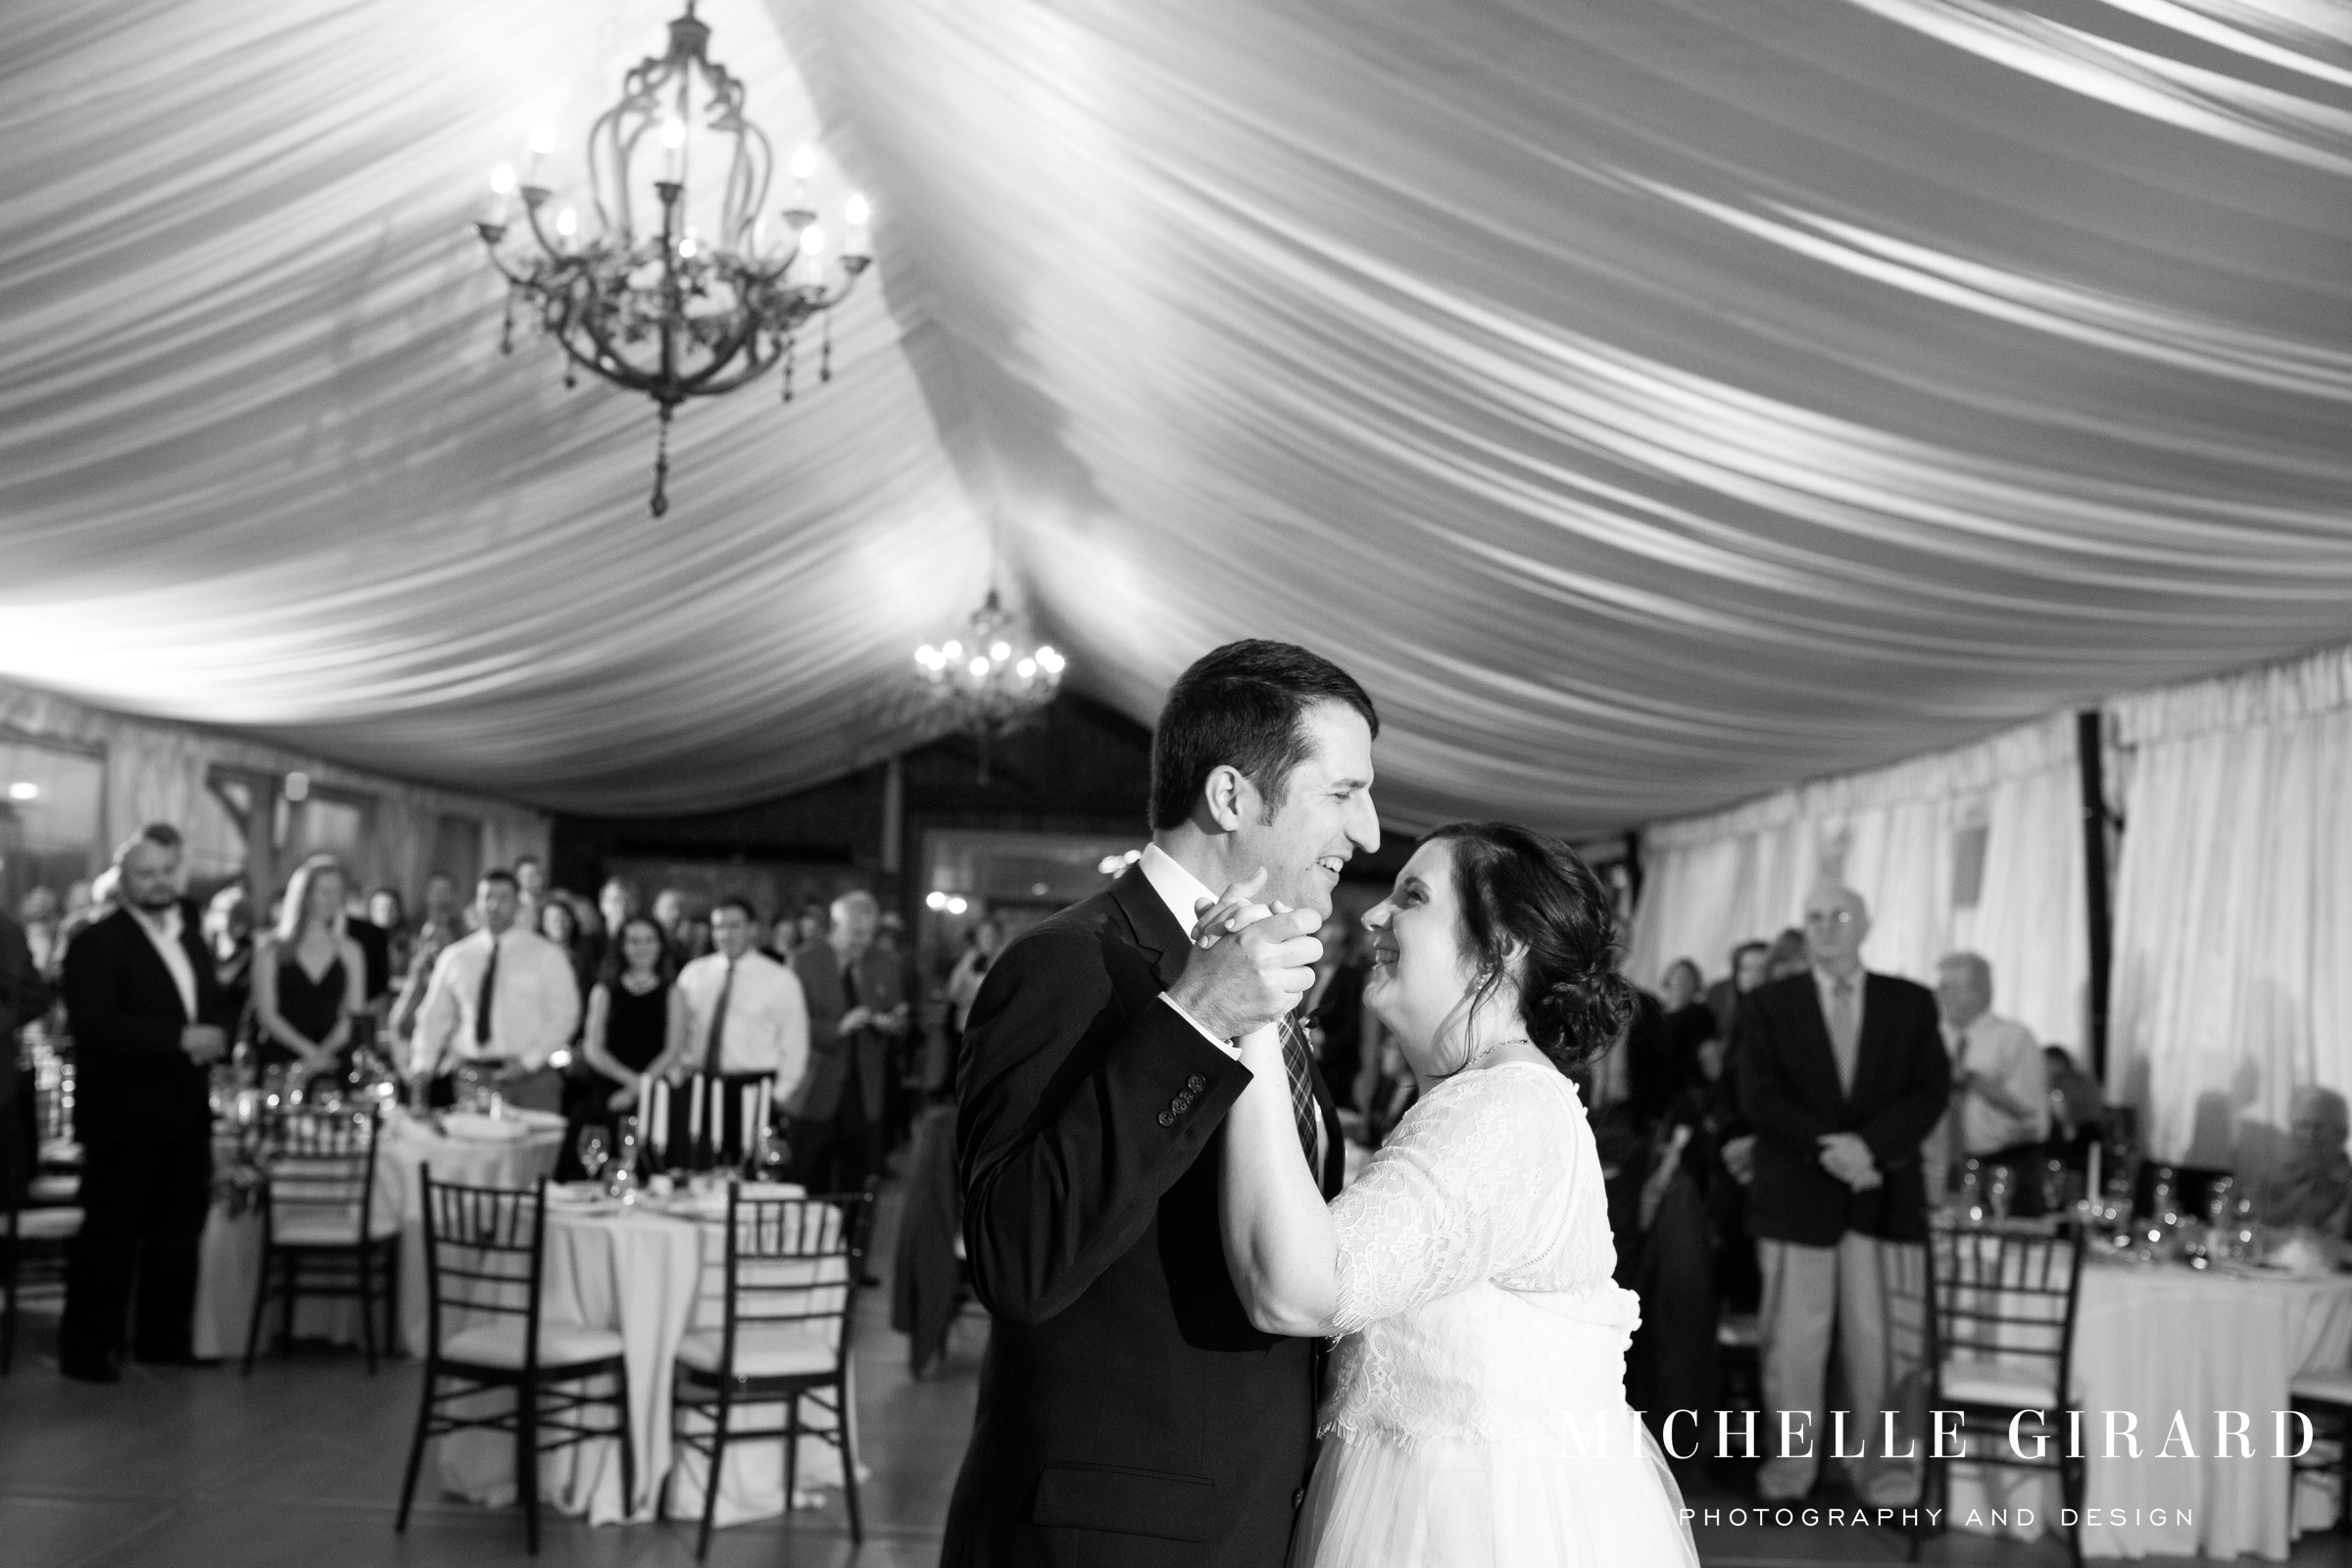 OweraVineyards_WineryWedding_CazenoviaNY_MichelleGirardPhotography009.jpg